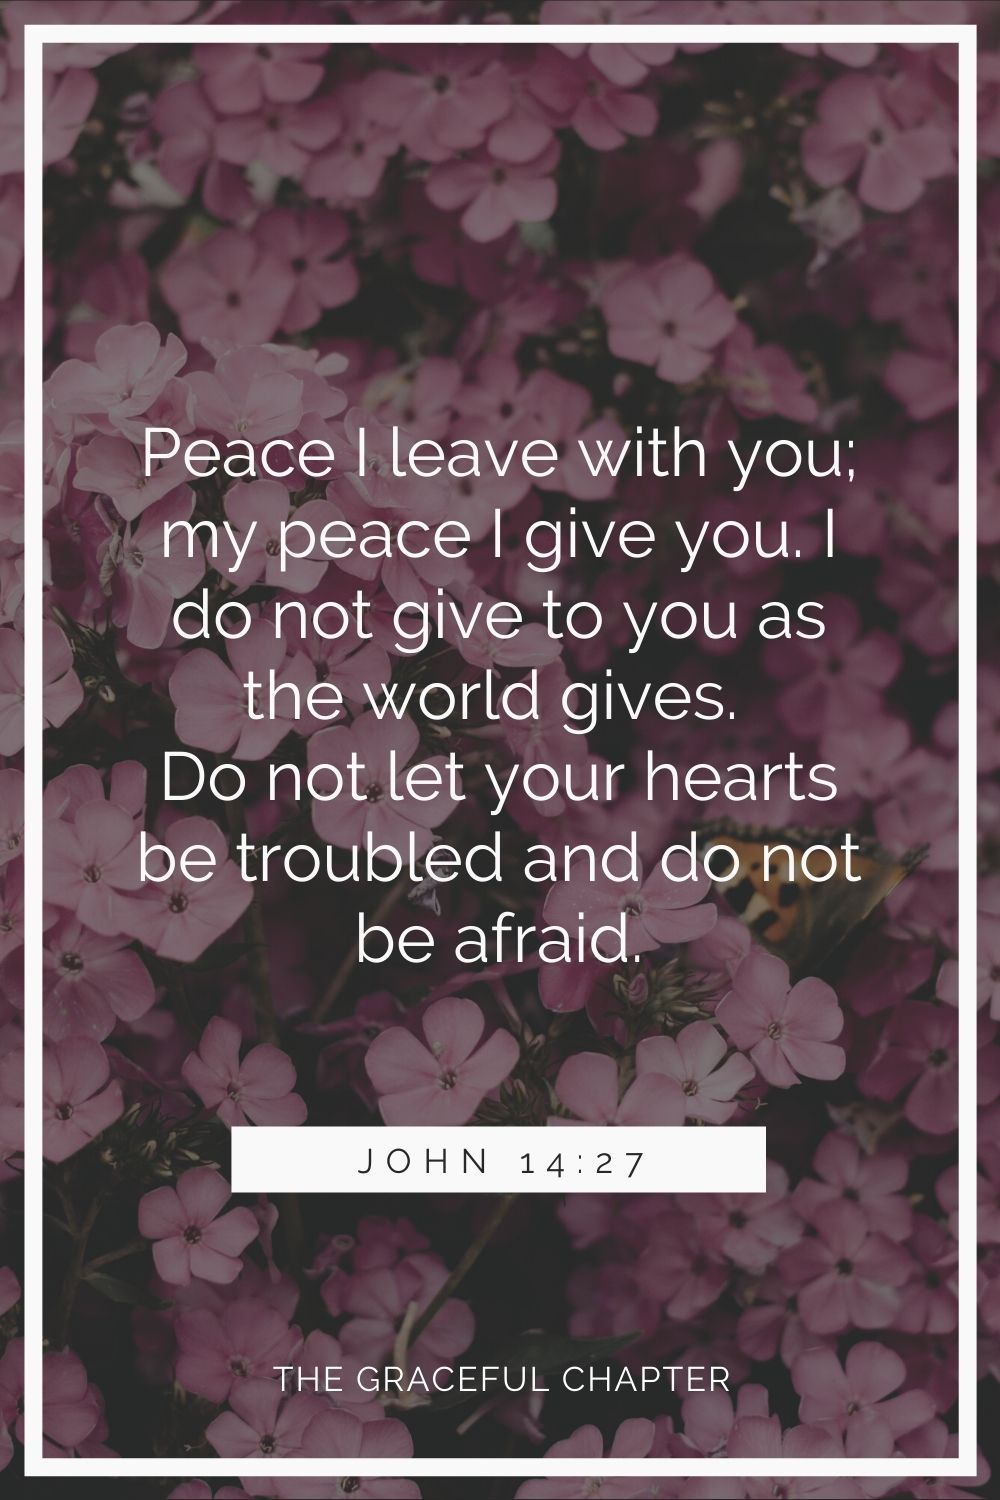 Peace I leave with you; my peace I give you. I do not give to you as the world gives. Do not let your hearts be troubled and do not be afraid. John 14:27